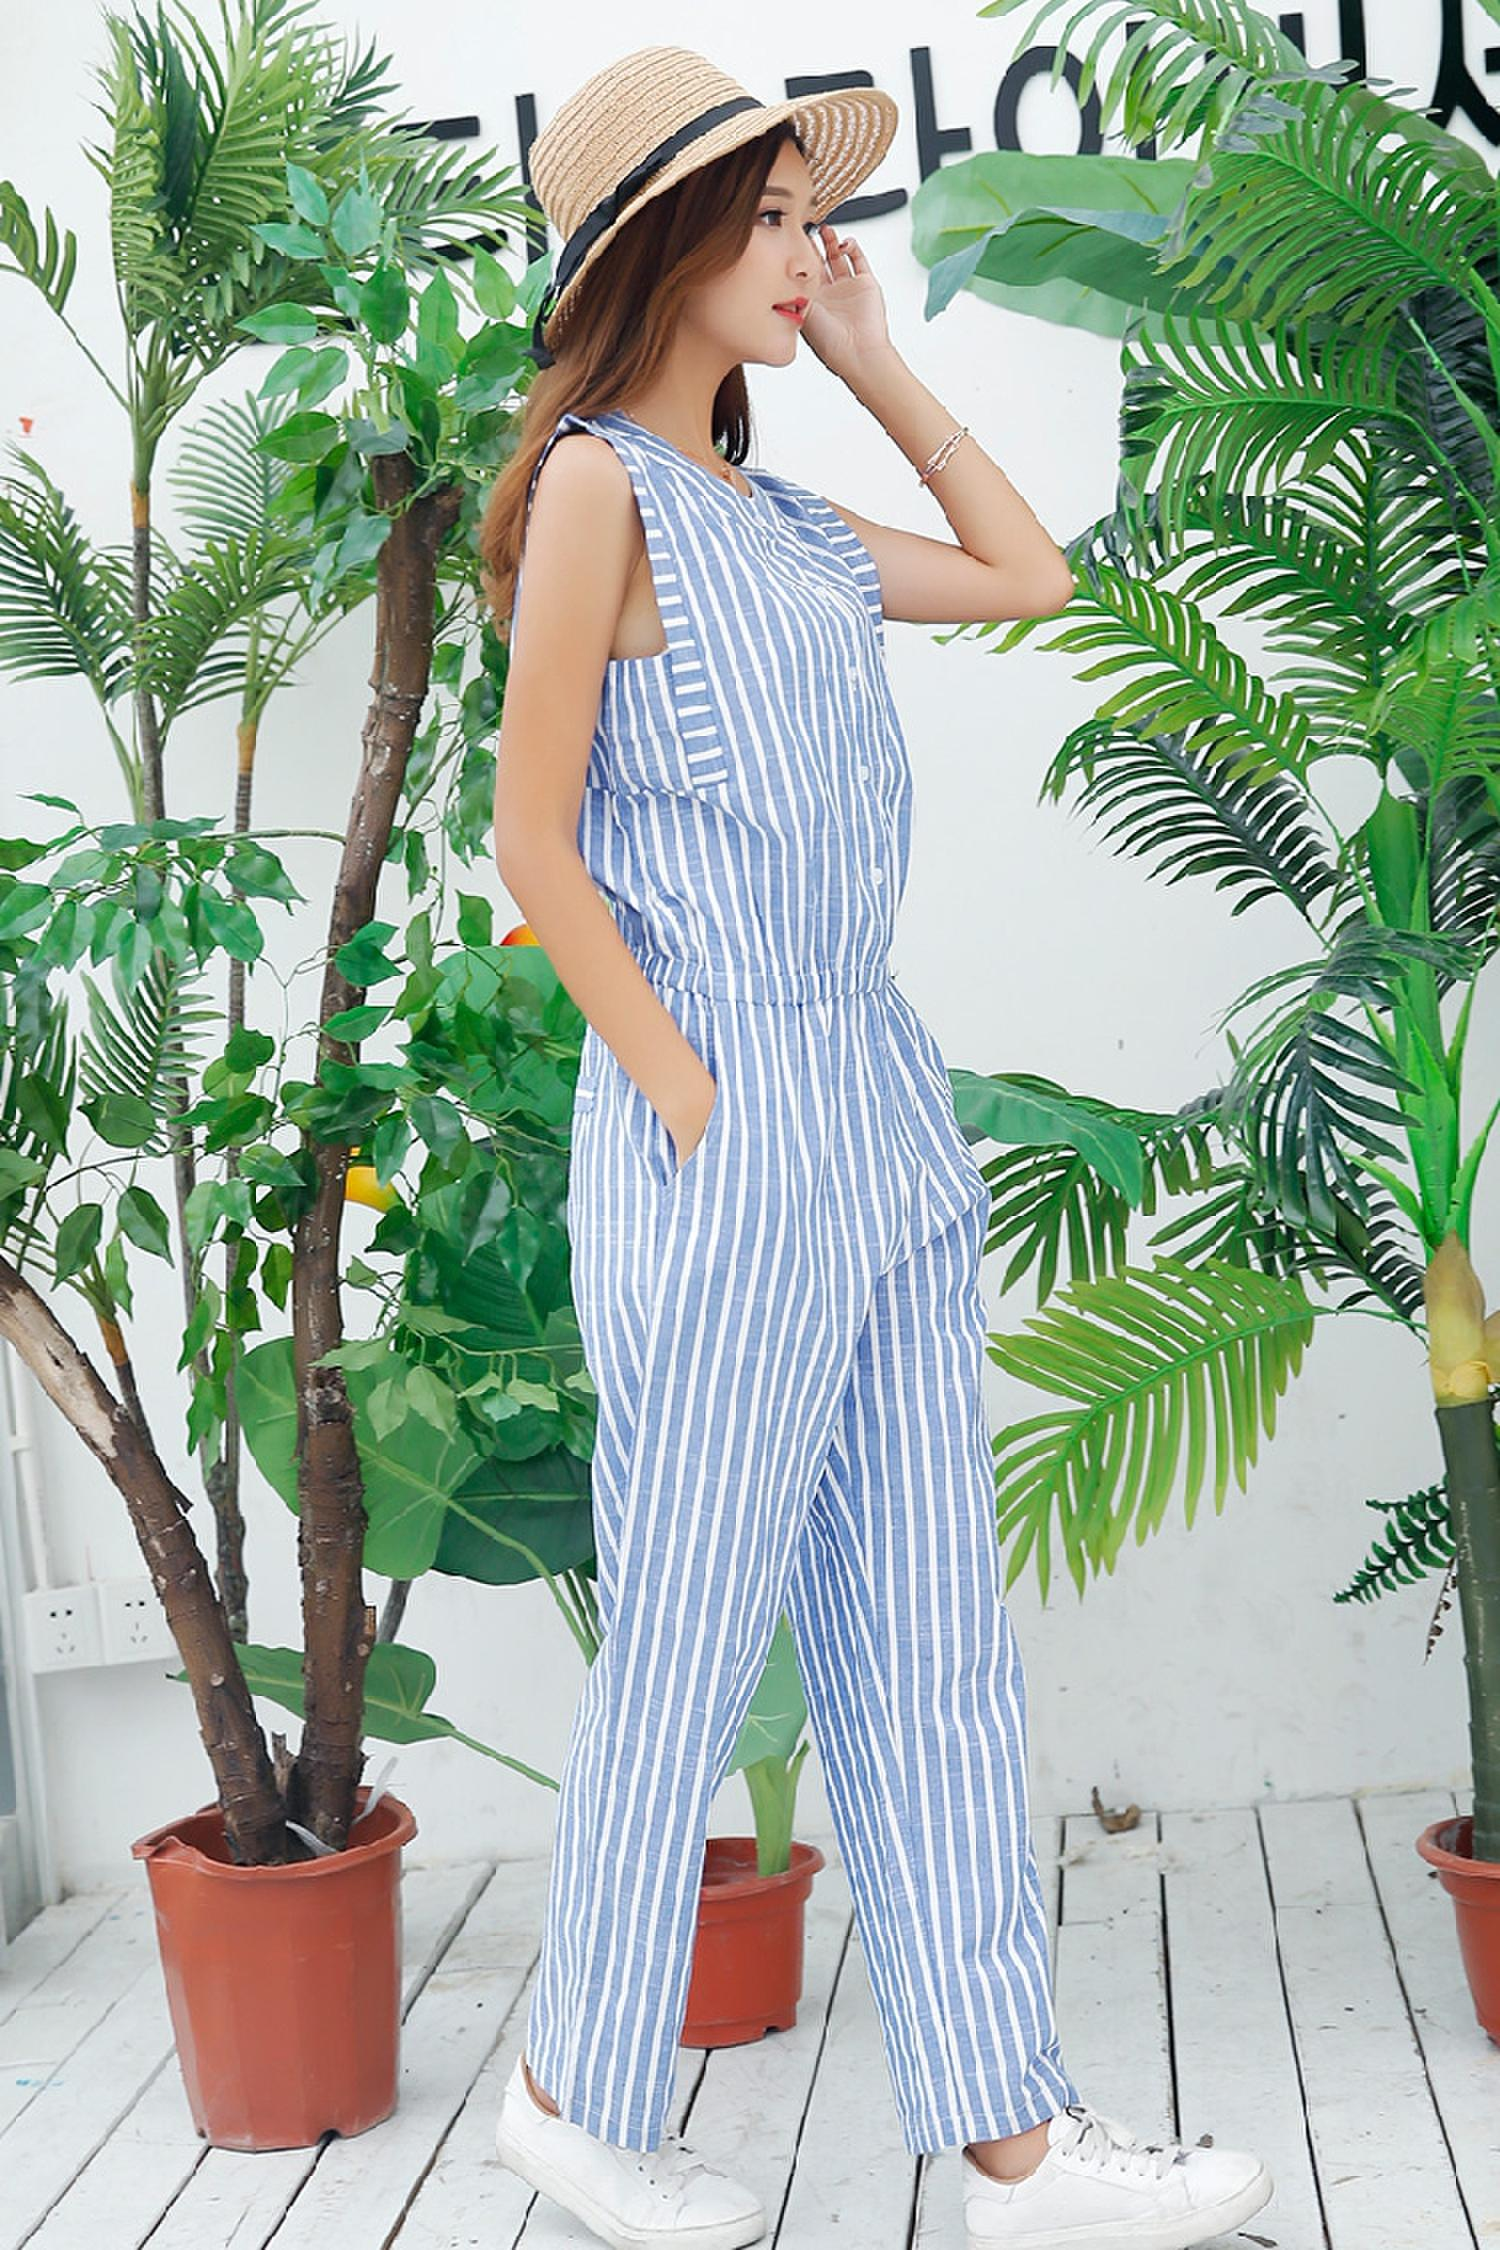 Pengpious 2019 summer fashion jumpsuit for young ladies cotton linen jumpsuit school girls sleeveless design striped